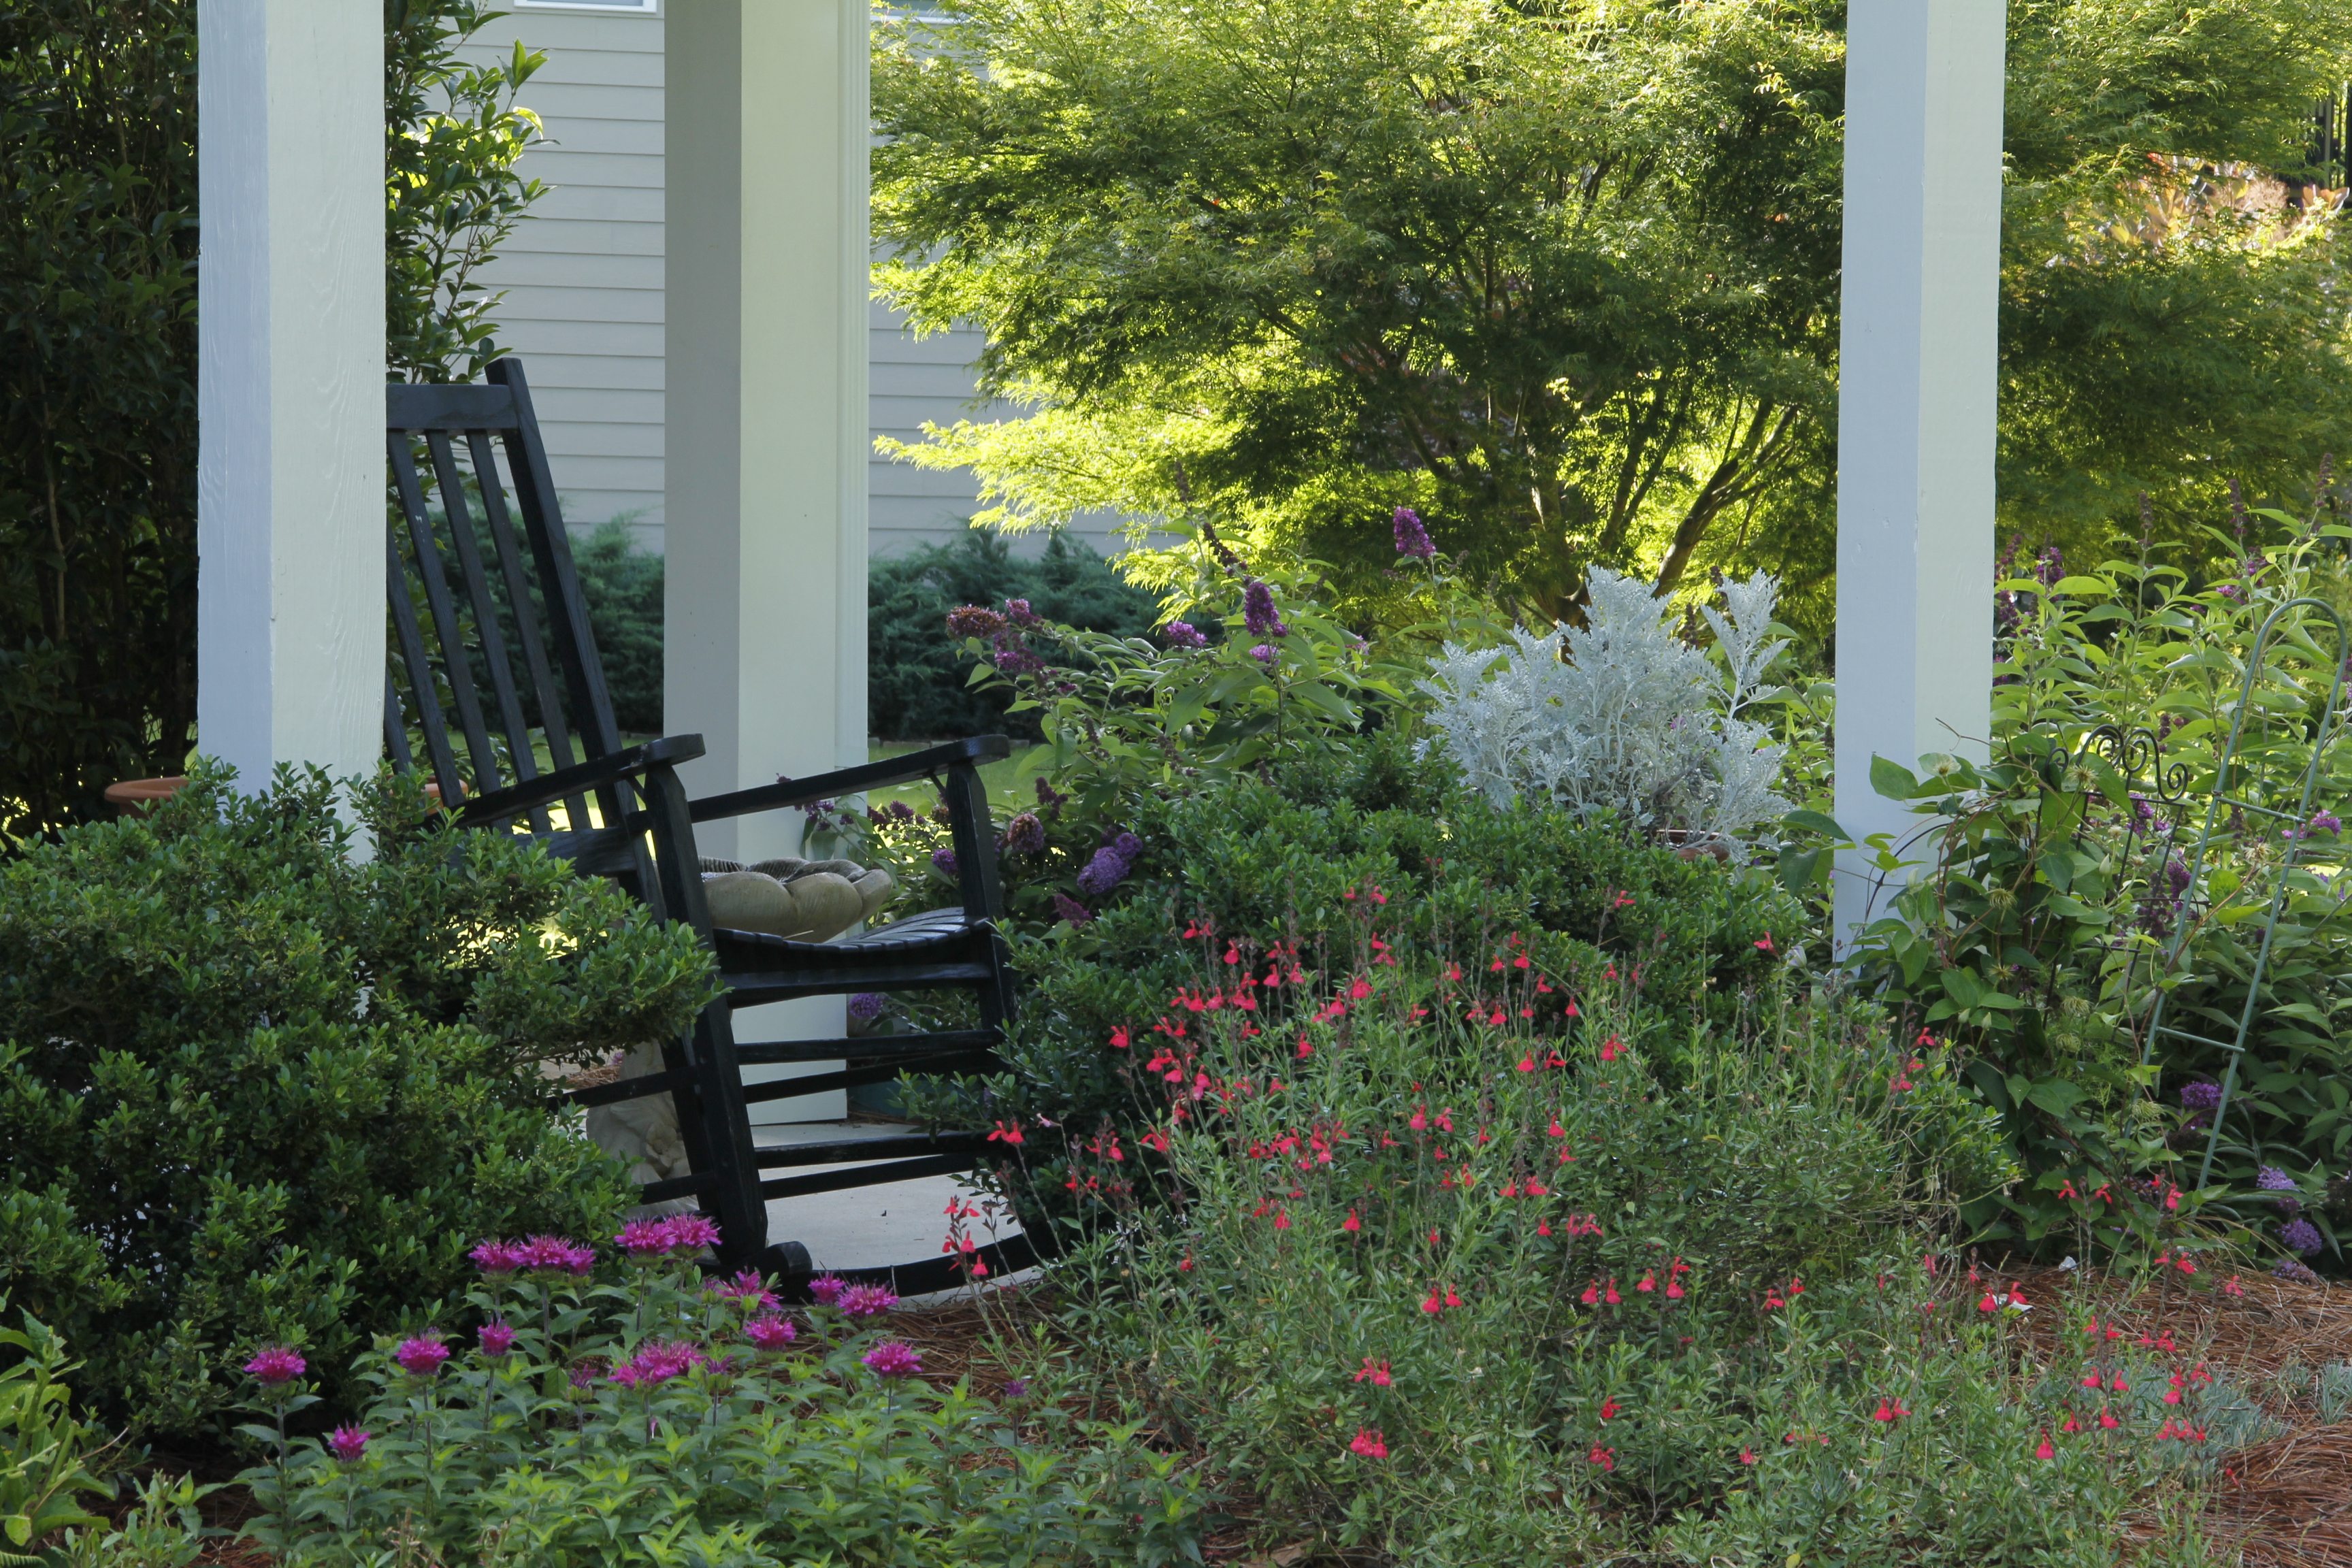 Top local Commercial landscape Design company near me - Modern Backyard Landscaping IMG